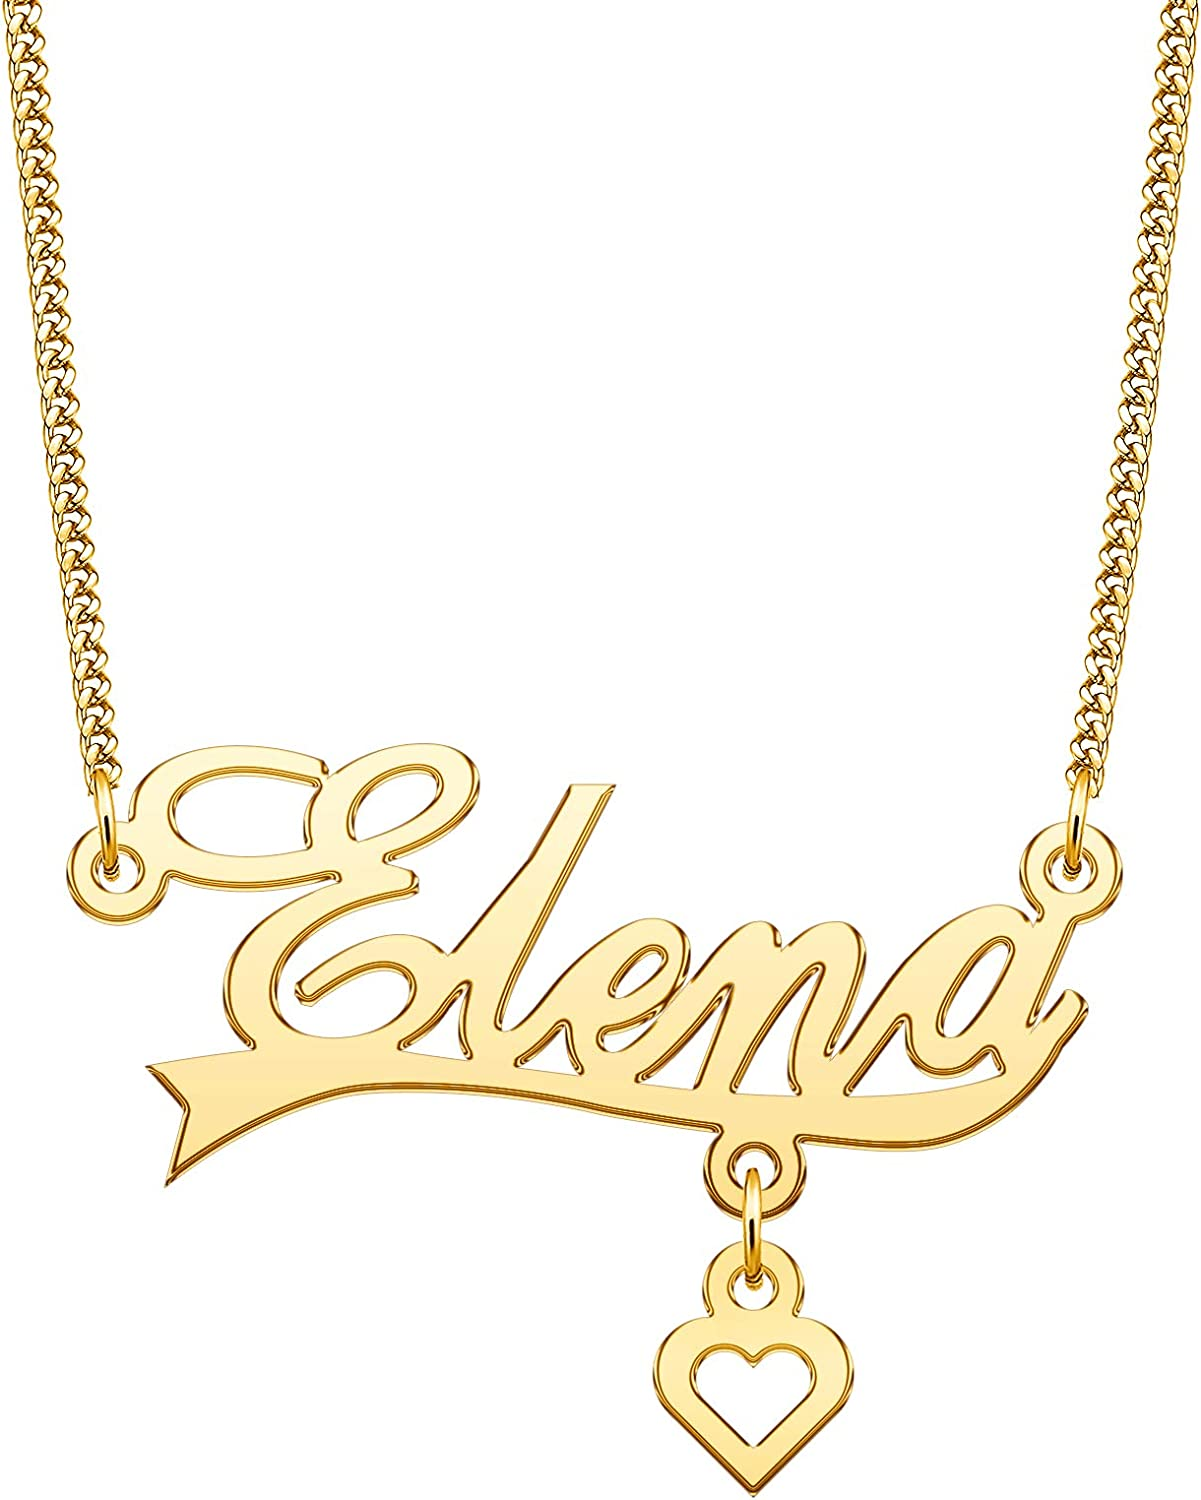 YSAHan Custom Initial Name Necklace Personalized Love Heart Charm Pendant Nameplate Jewelry Birthday Valentines Day Gift for Women Girls